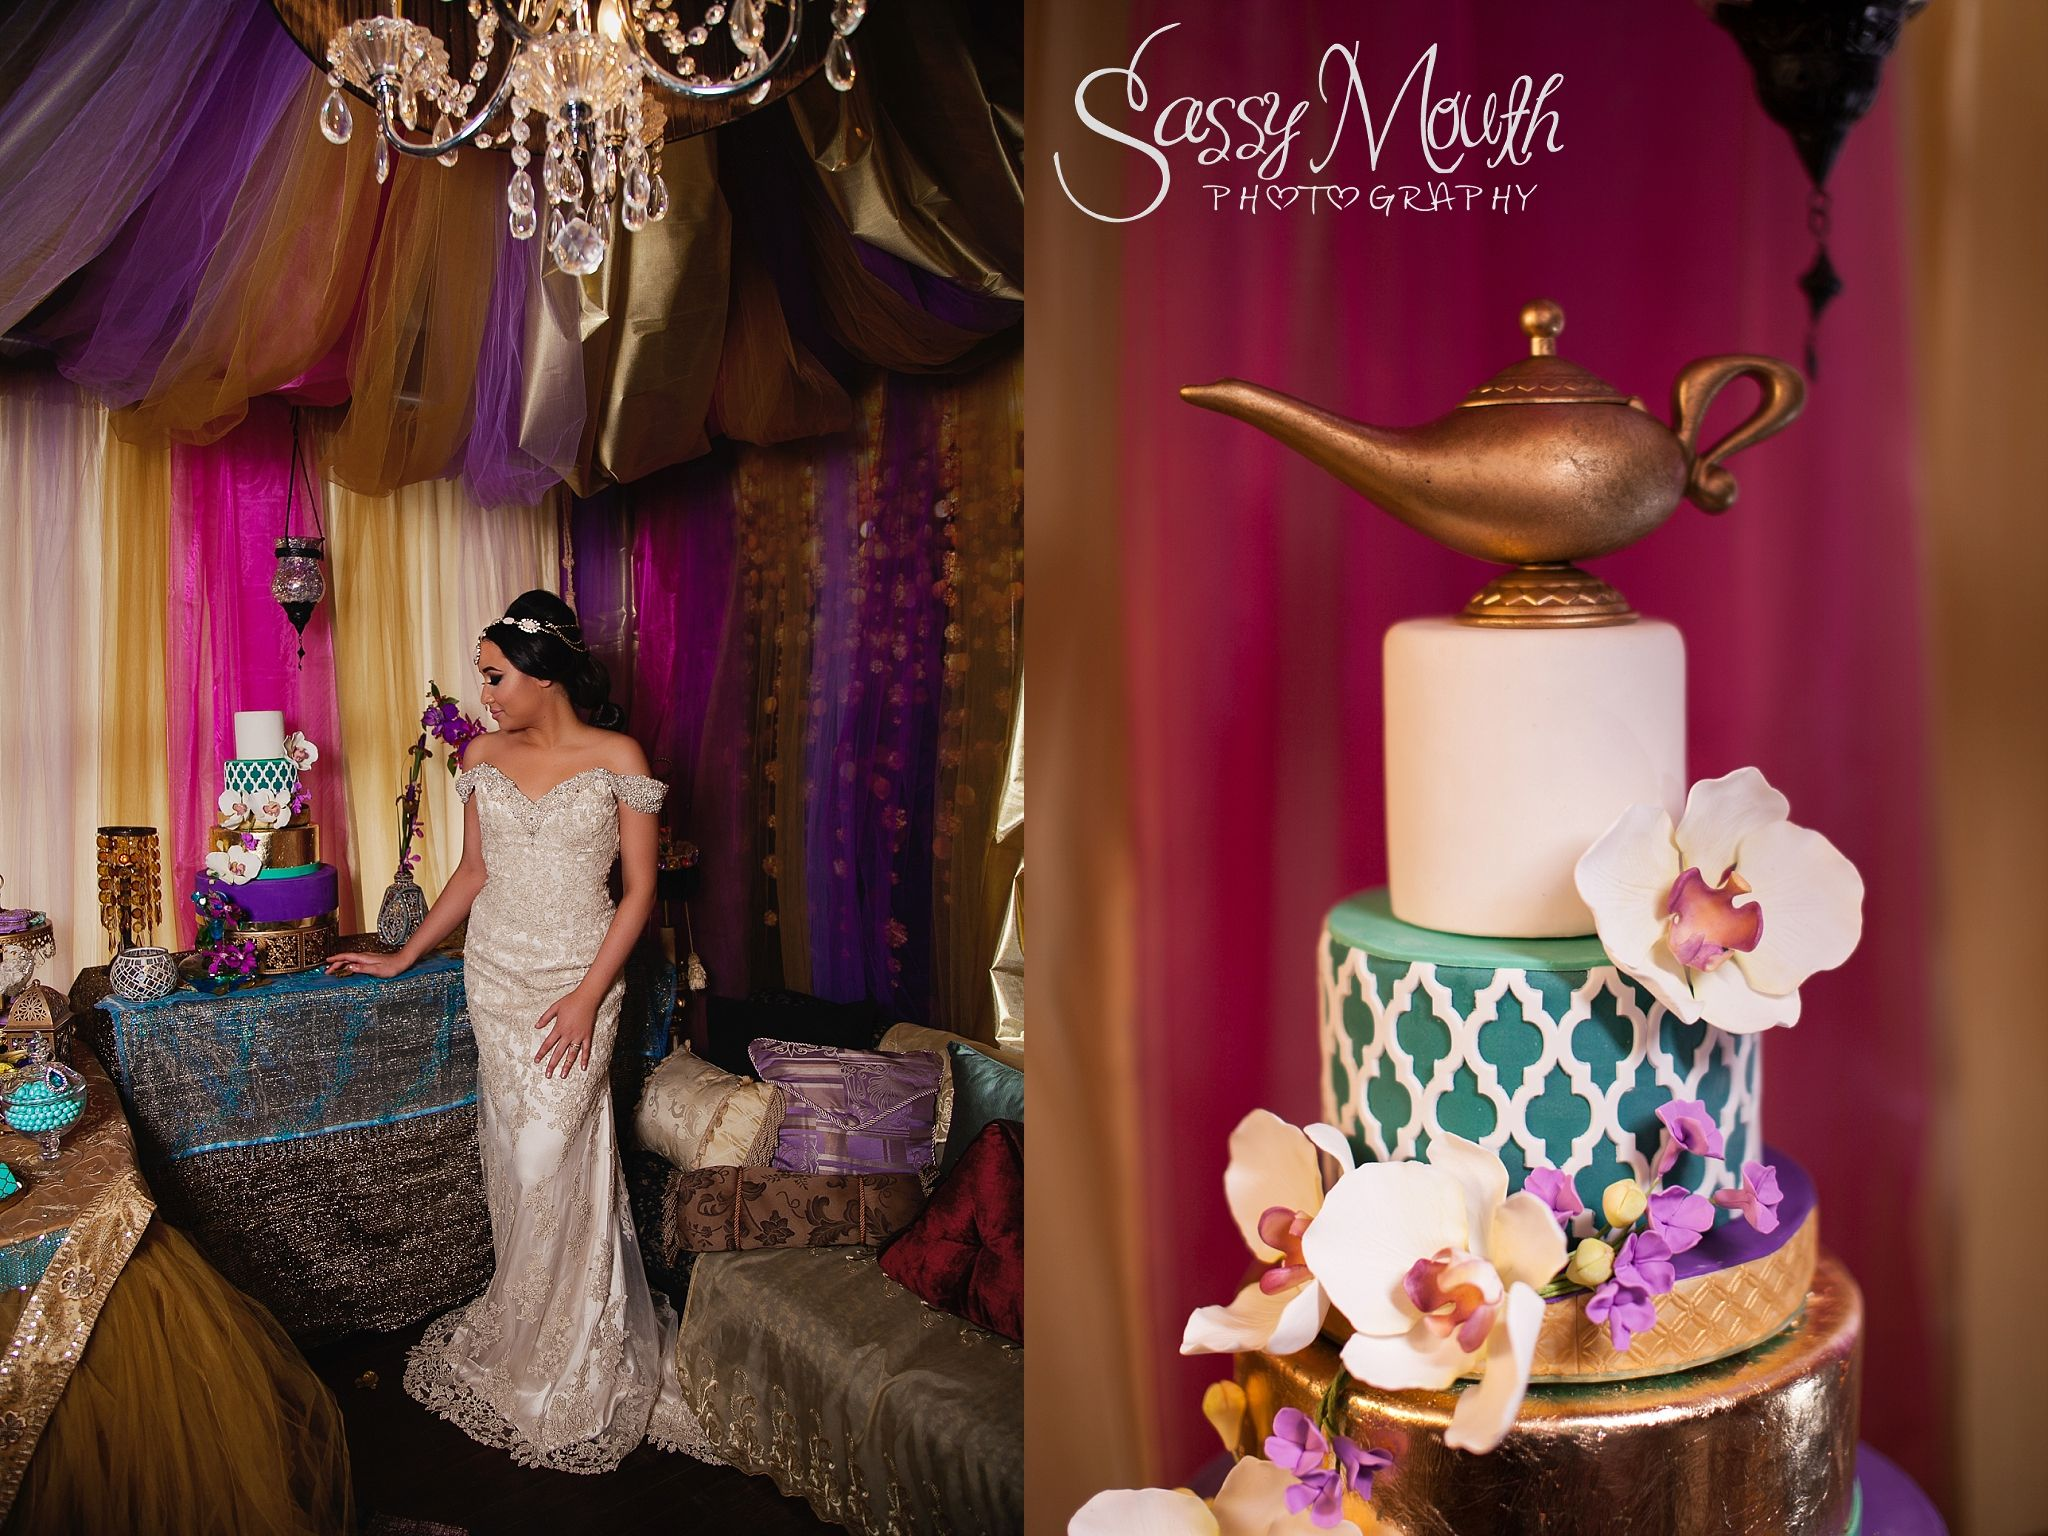 Aladdin Wedding Cake Princess Jasmine Bride Sassy Mouth Photography Photo CT Series